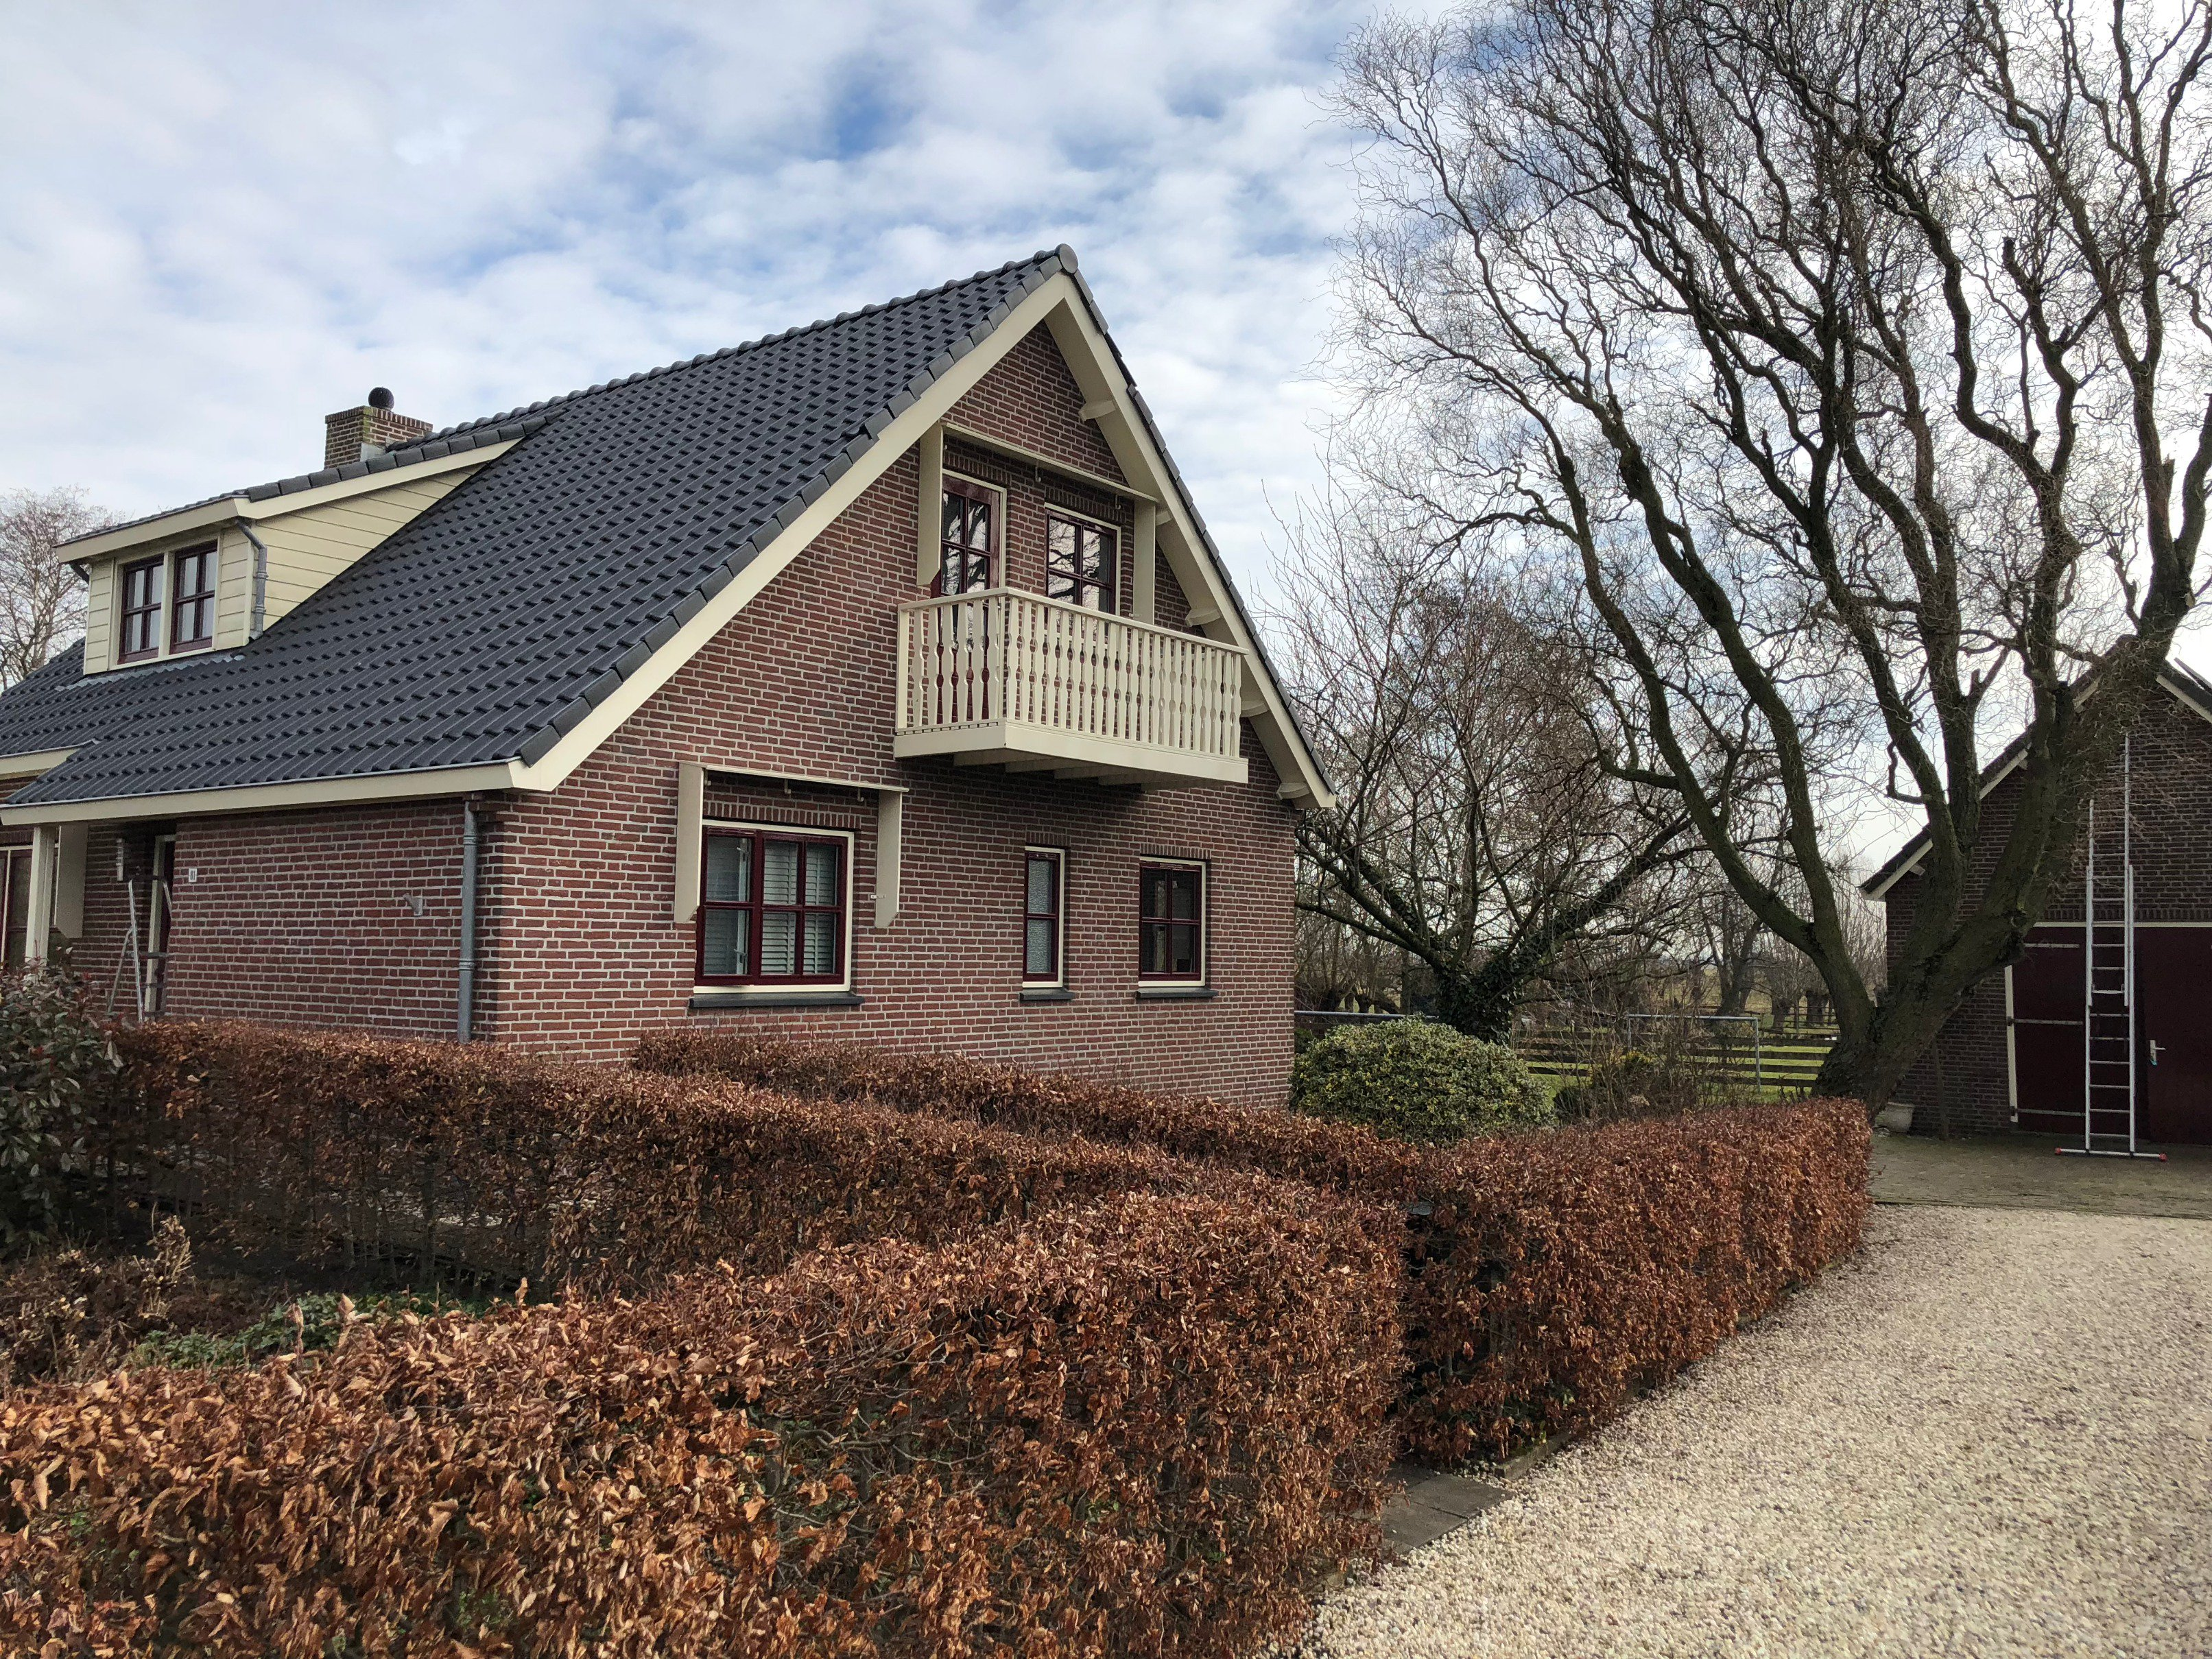 Detached house in Bodegraven